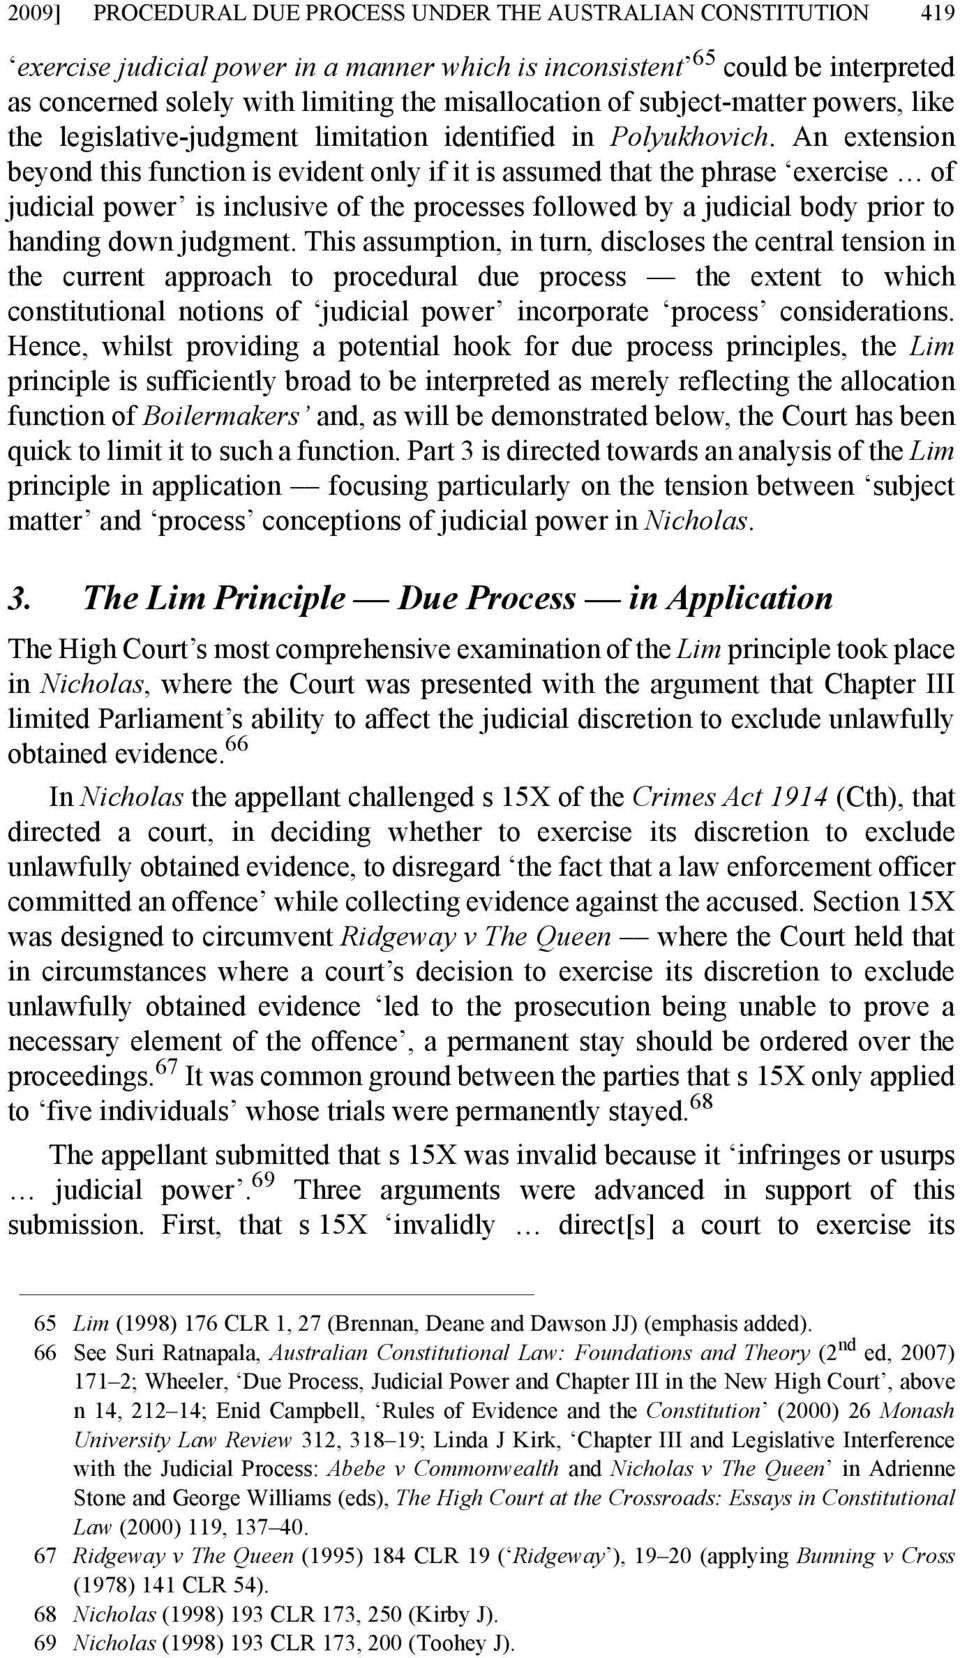 An extension beyond this function is evident only if it is assumed that the phrase exercise of judicial power is inclusive of the processes followed by a judicial body prior to handing down judgment.